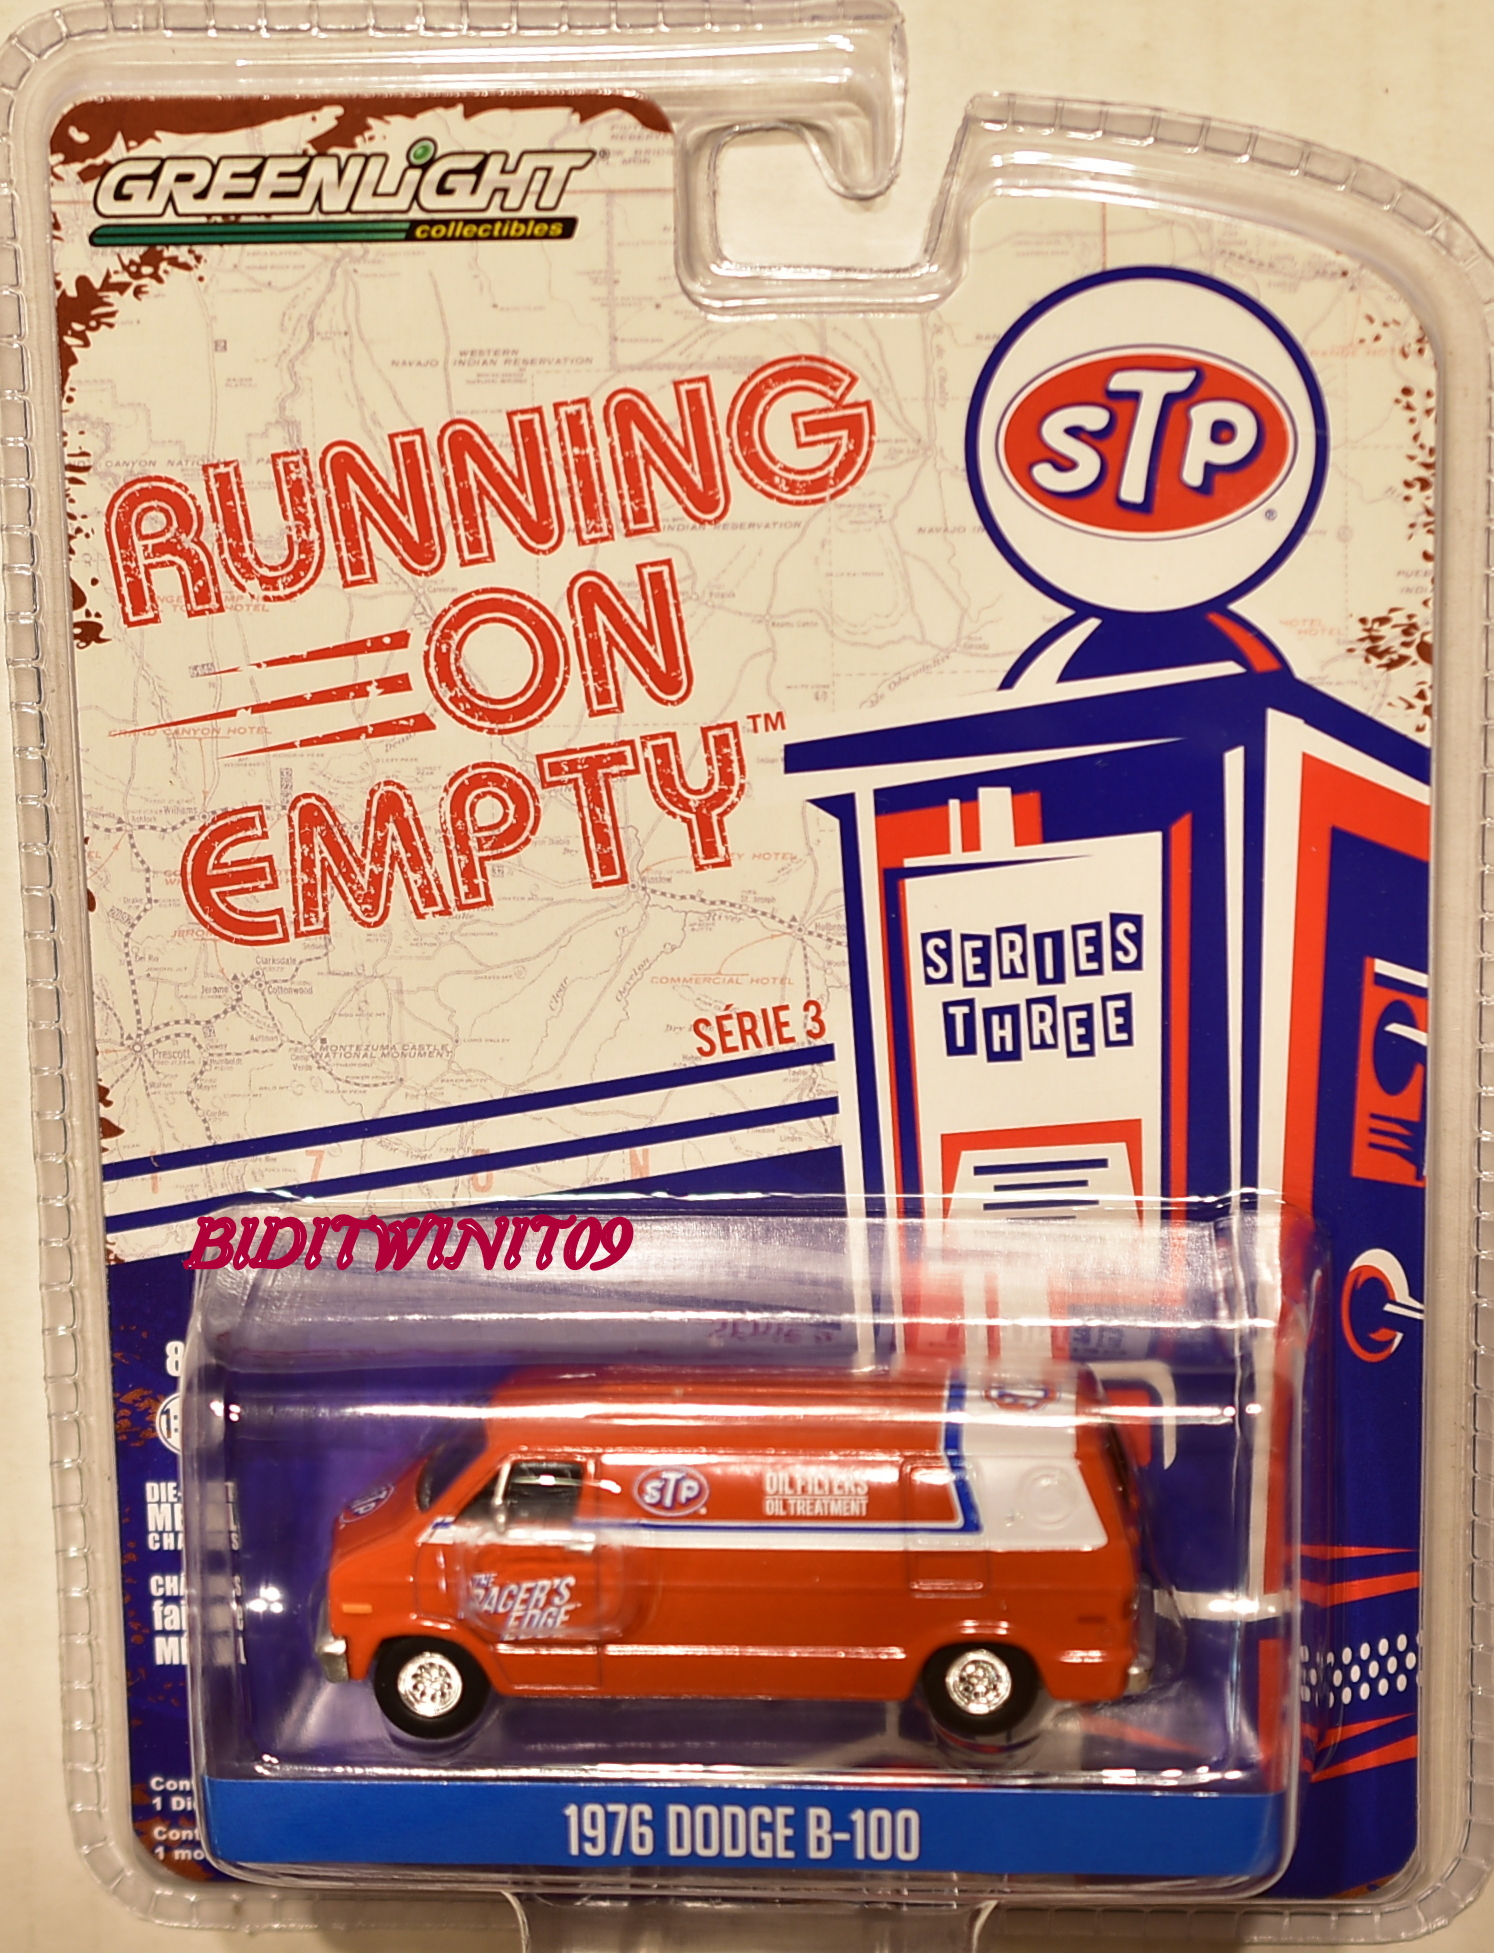 GREENLIGHT 2017 RUNNING ON EMPTY SERIES 3 1976 DODGE B-100